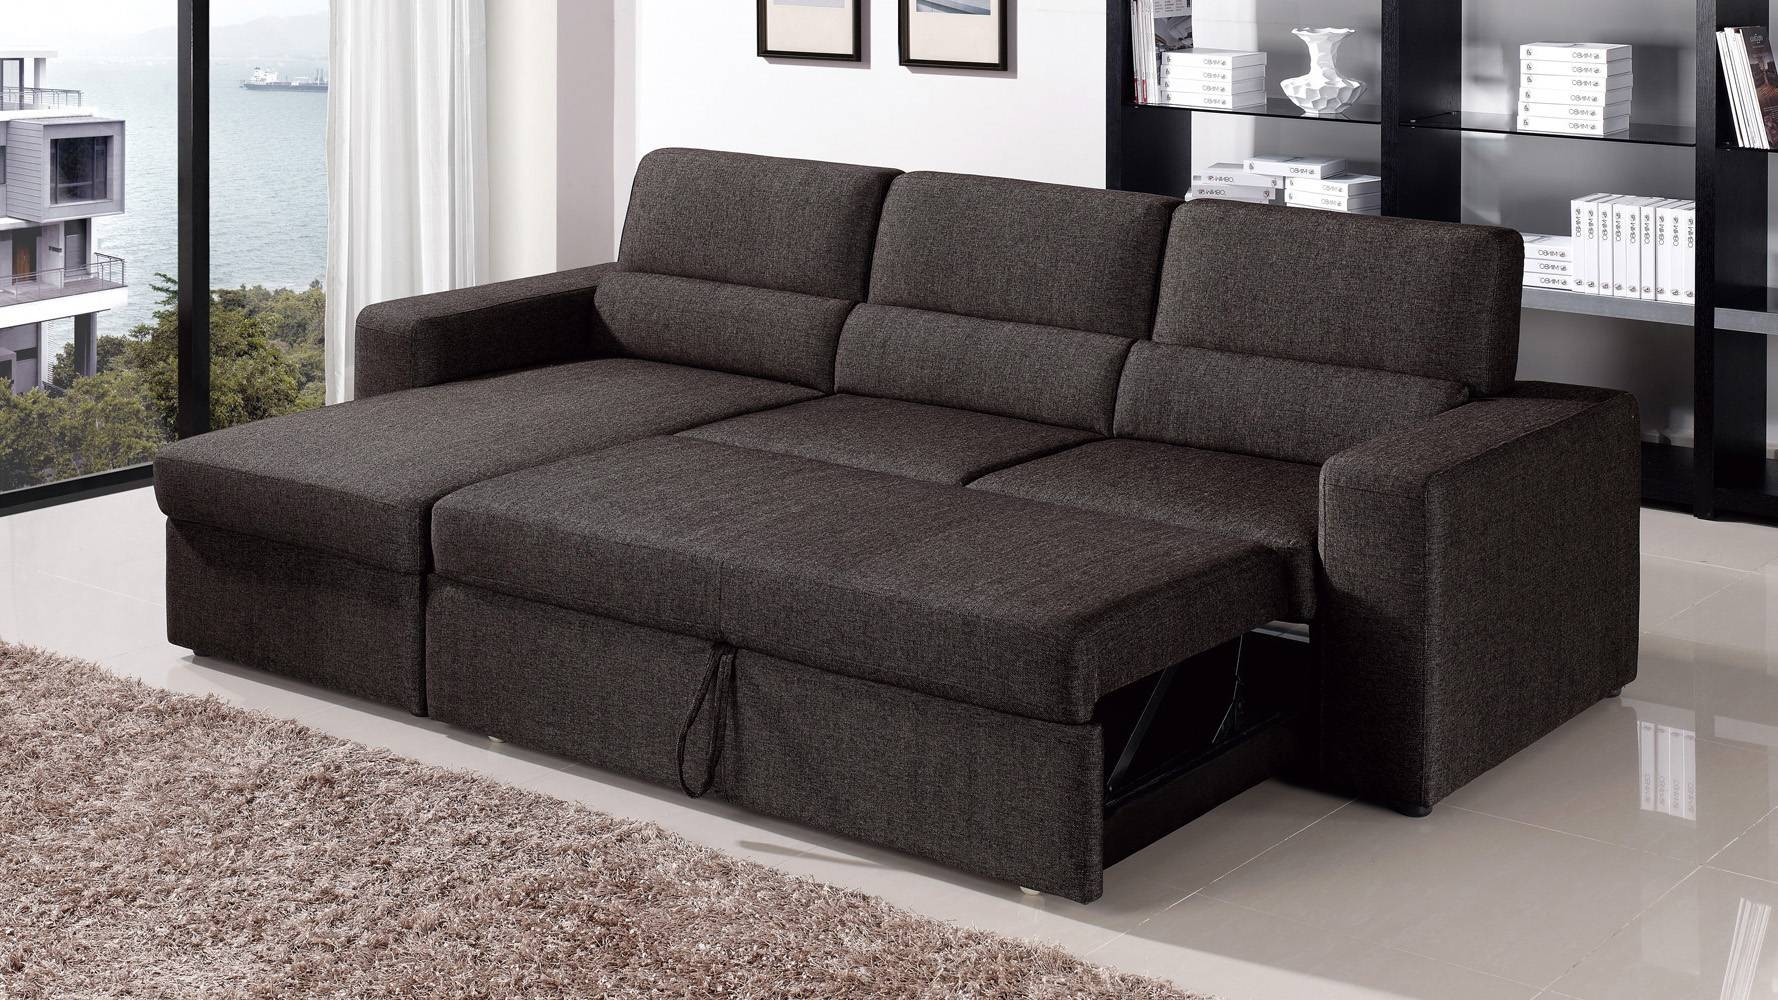 Sleeper Sectional Sofa With Storage Chaise | Tehranmix Decoration In Small Sectional Sofas With Storage (View 11 of 15)